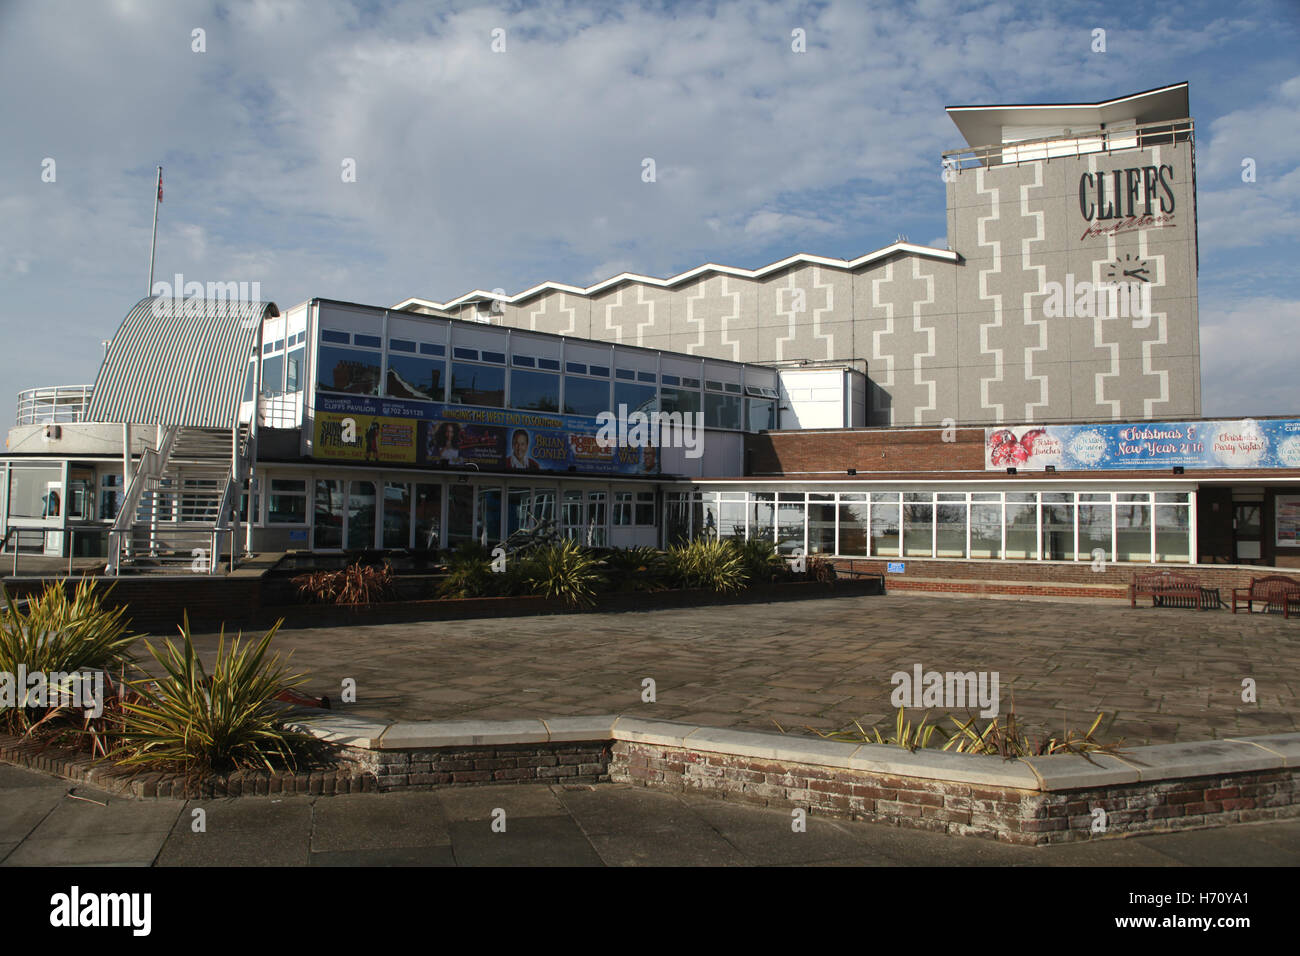 Cliffs Pavilion, Station Road, Westcliff-on-Sea, Southend-on-Sea, Essex, England Stock Photo